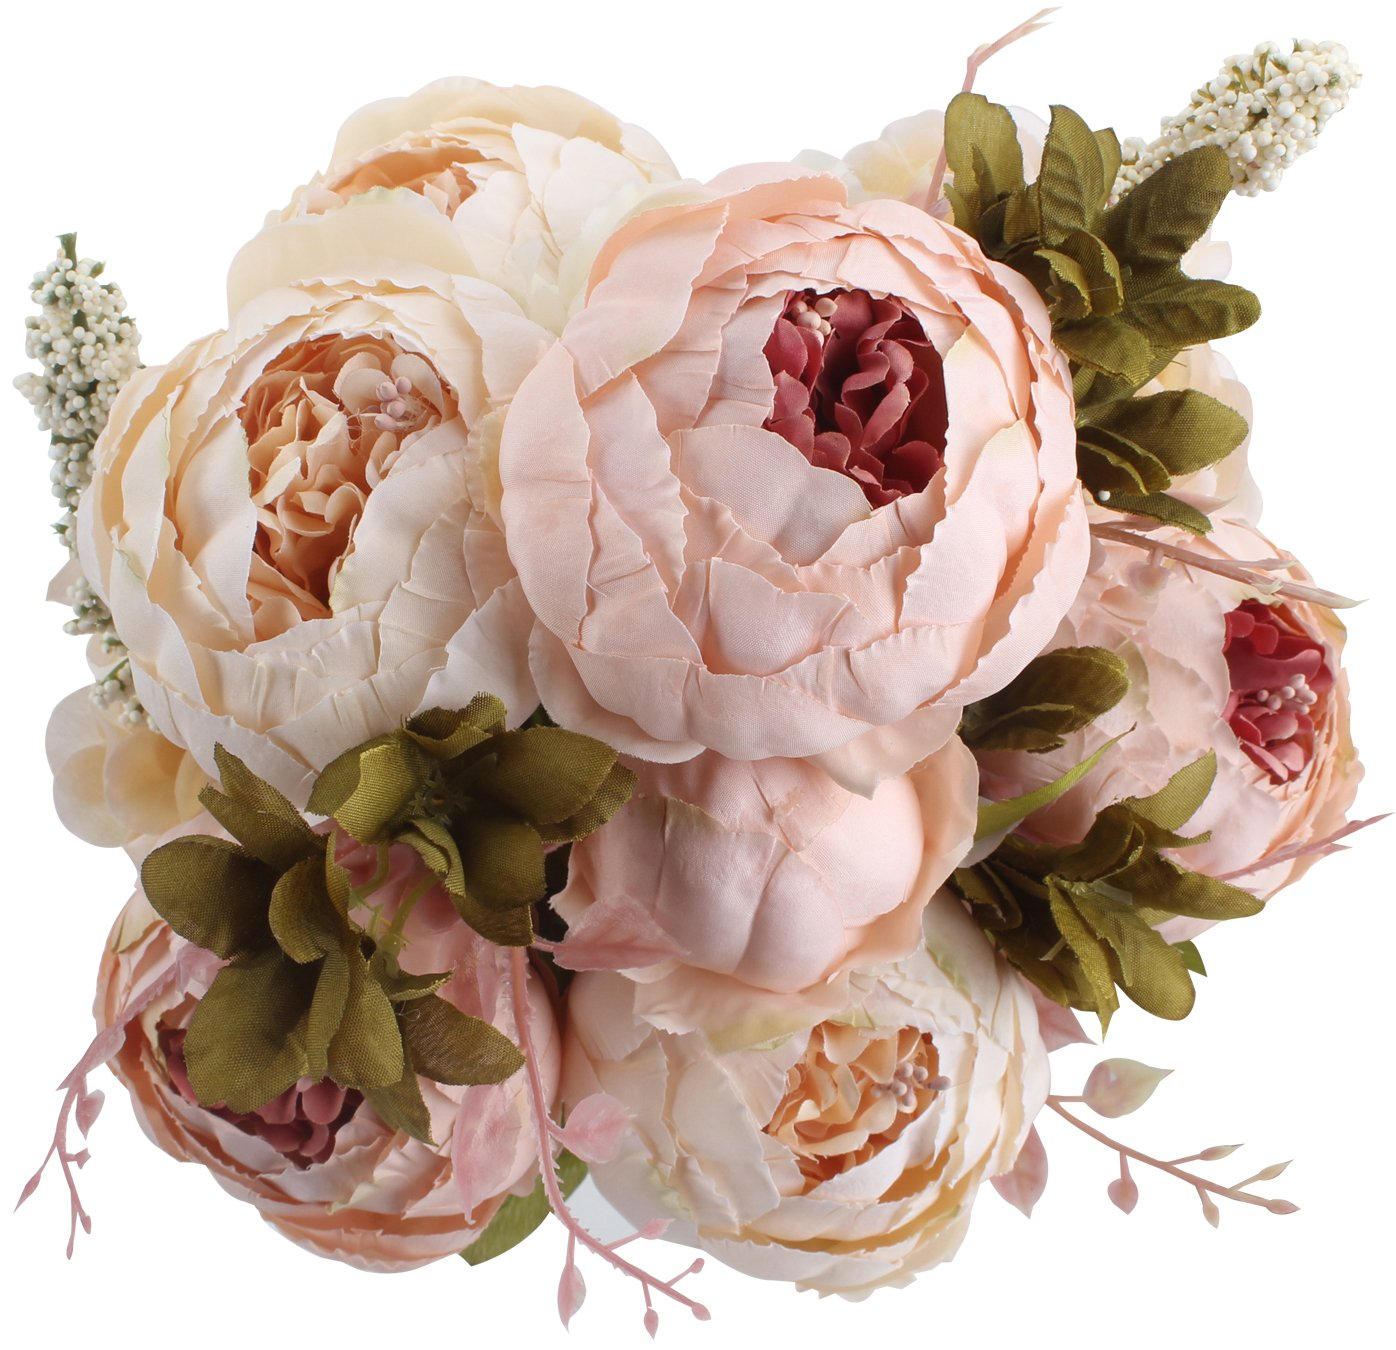 Amazon duovlo fake flowers vintage artificial peony silk amazon duovlo fake flowers vintage artificial peony silk flowers wedding home decorationpack of 1 light pink home kitchen mightylinksfo Gallery